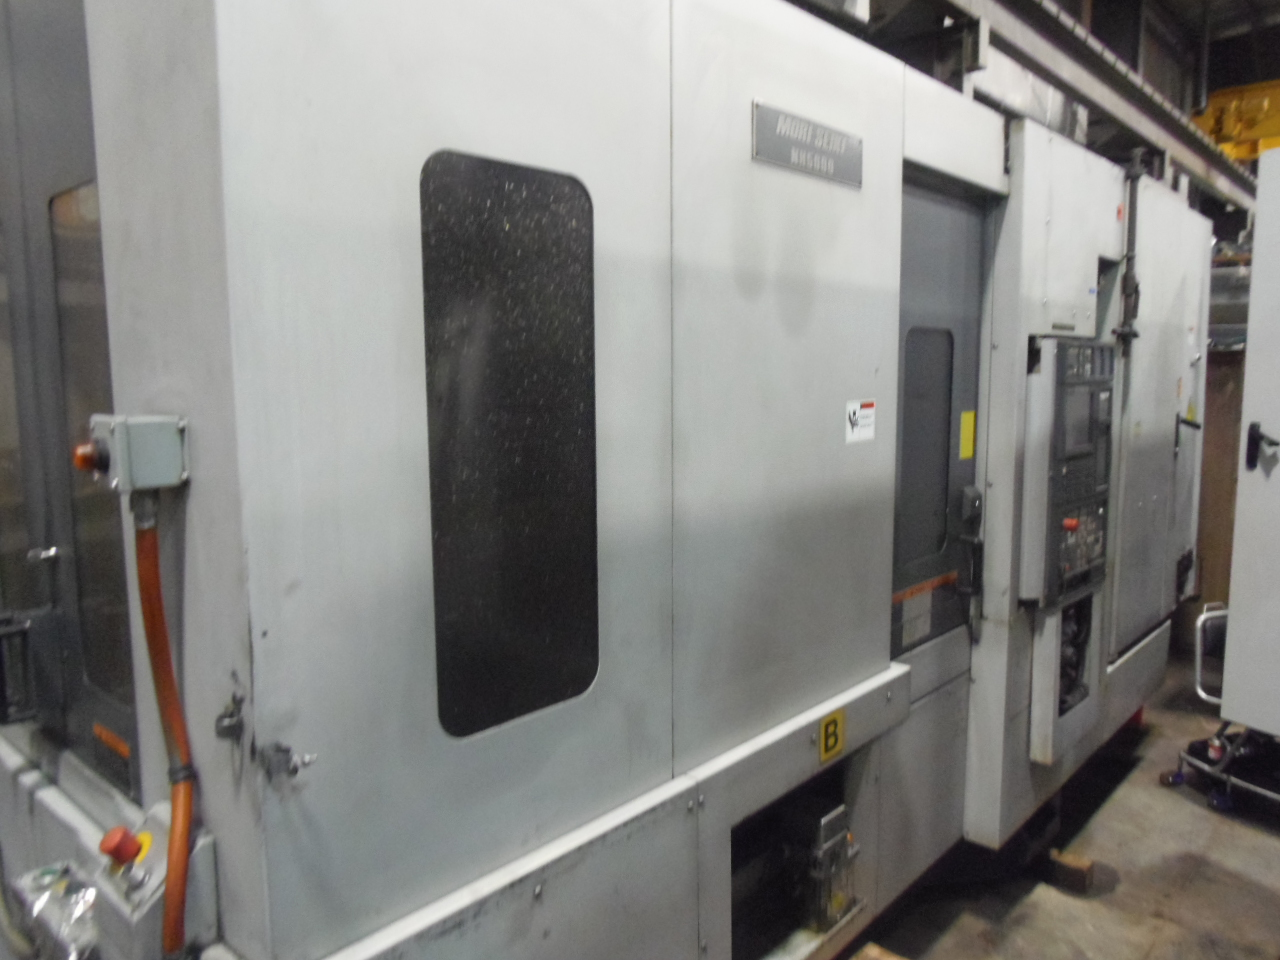 NH-5000/40 MORI SEIKI, MODEL NH5000, 2003, 1 DEGREE, MSC501, 60 ATC, 40 TAPER, 2 PALLET, 14,000 RPM